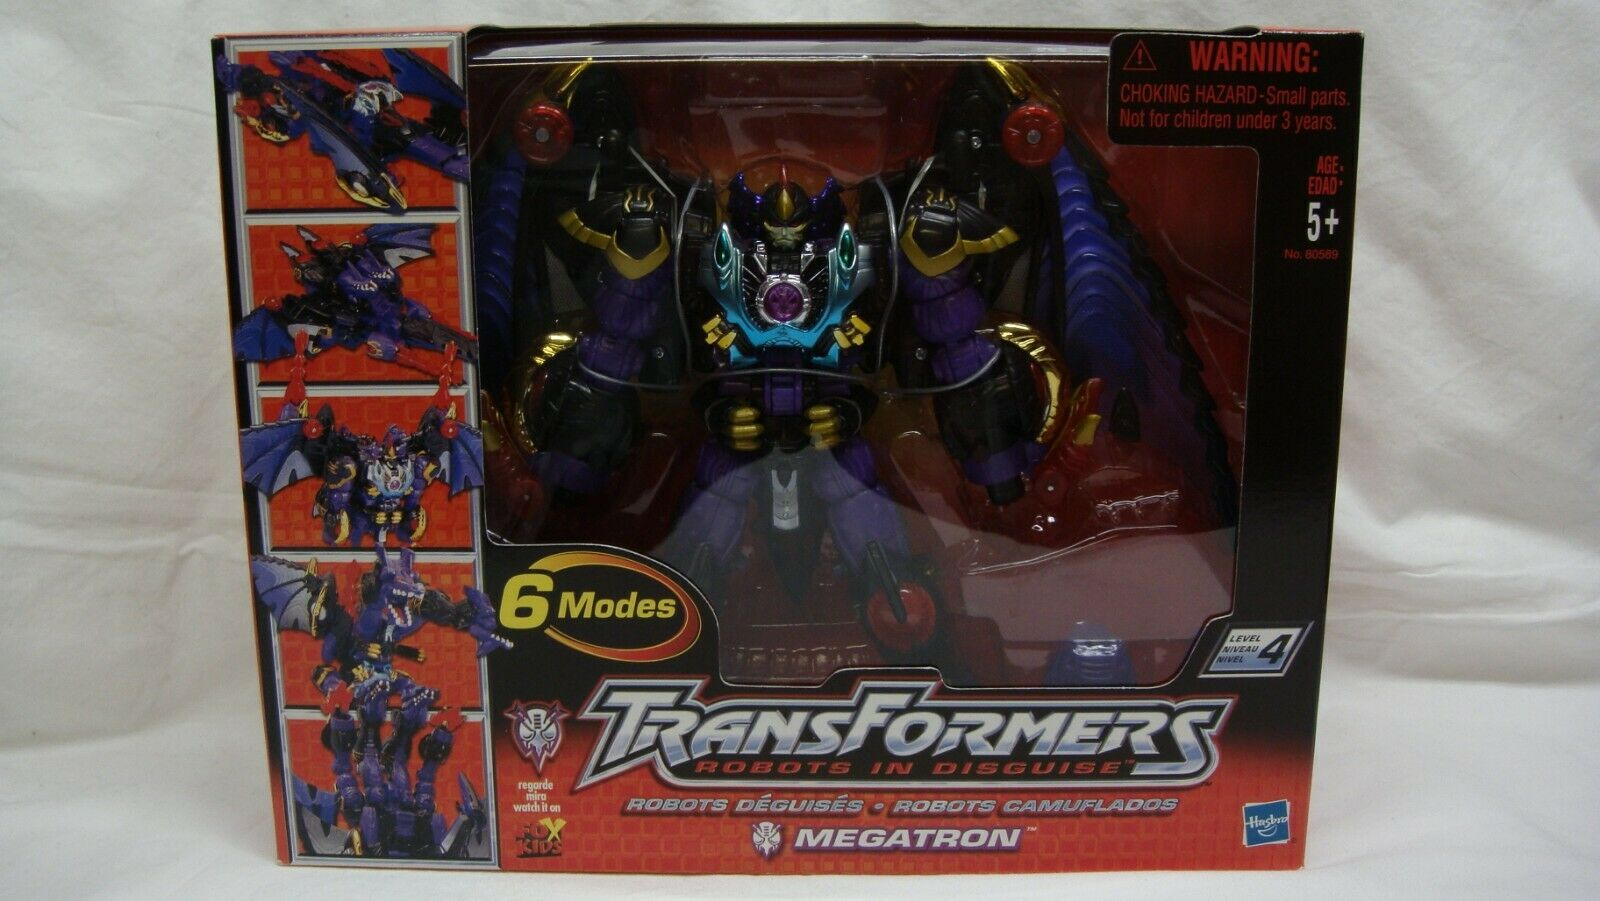 TRANSFORMERS ROBOTS IN DISGUISE RID MEGATRON 6 MODES 2001 NEW IN SEALED BOX